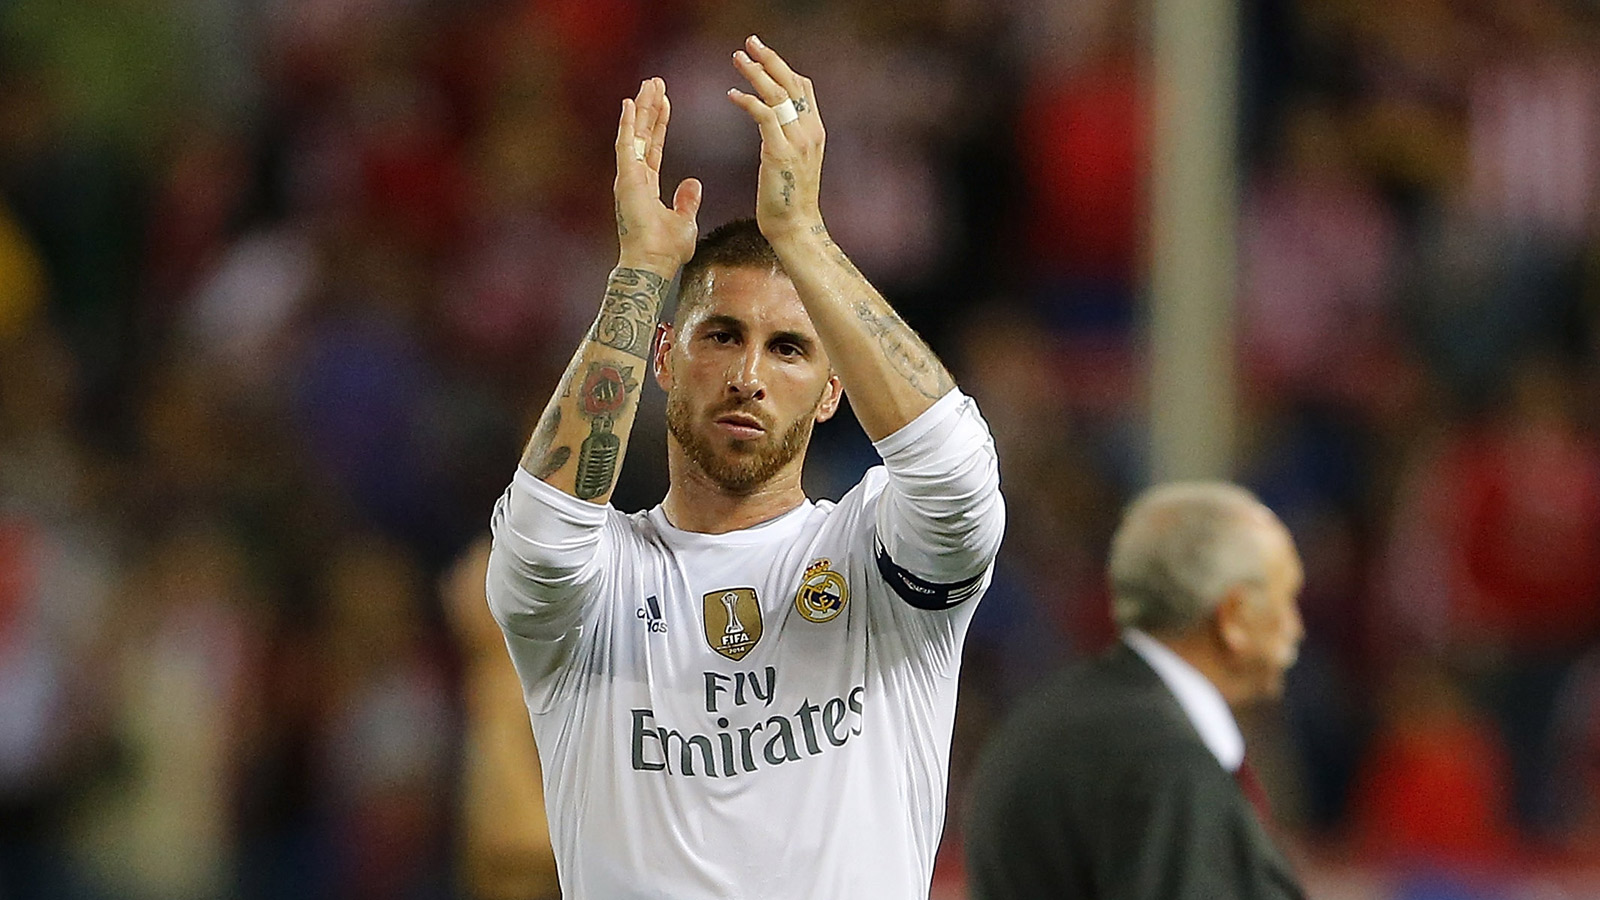 Real Madrid's Sergio Ramos to miss Spain's European qualifiers